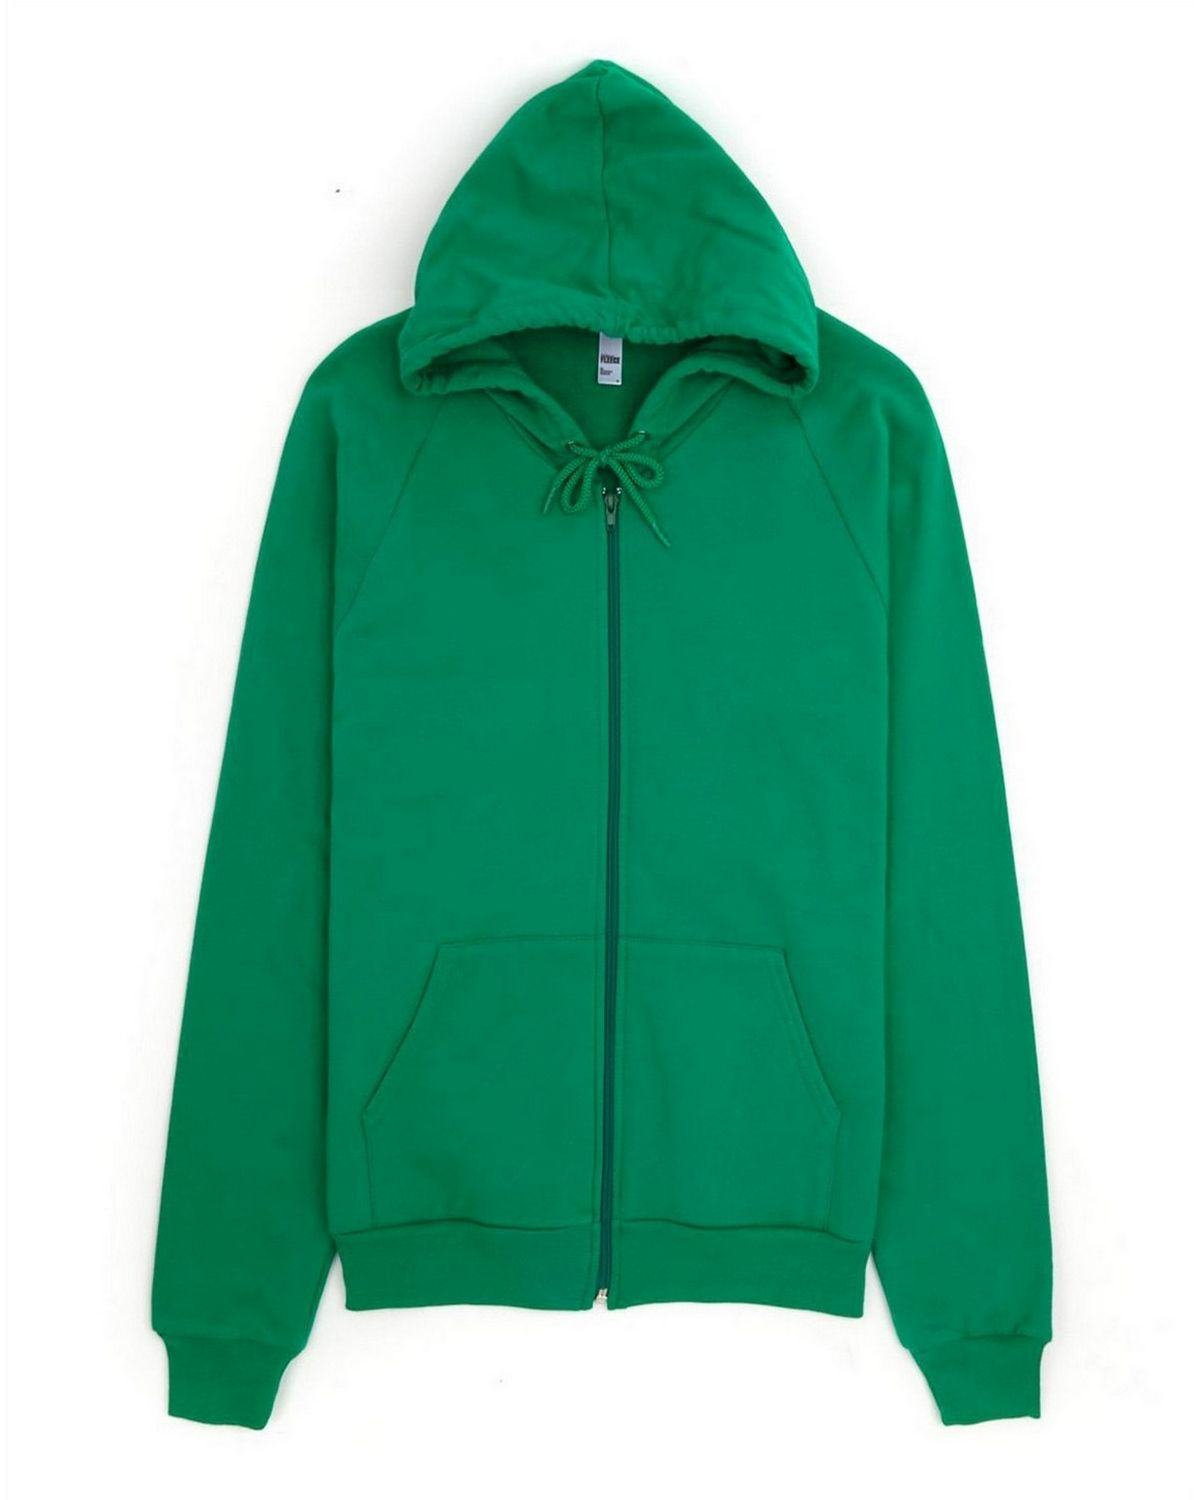 American Apparel 5497 Unisex Fleece Zip Hoodie - Kelly Green - L 5497